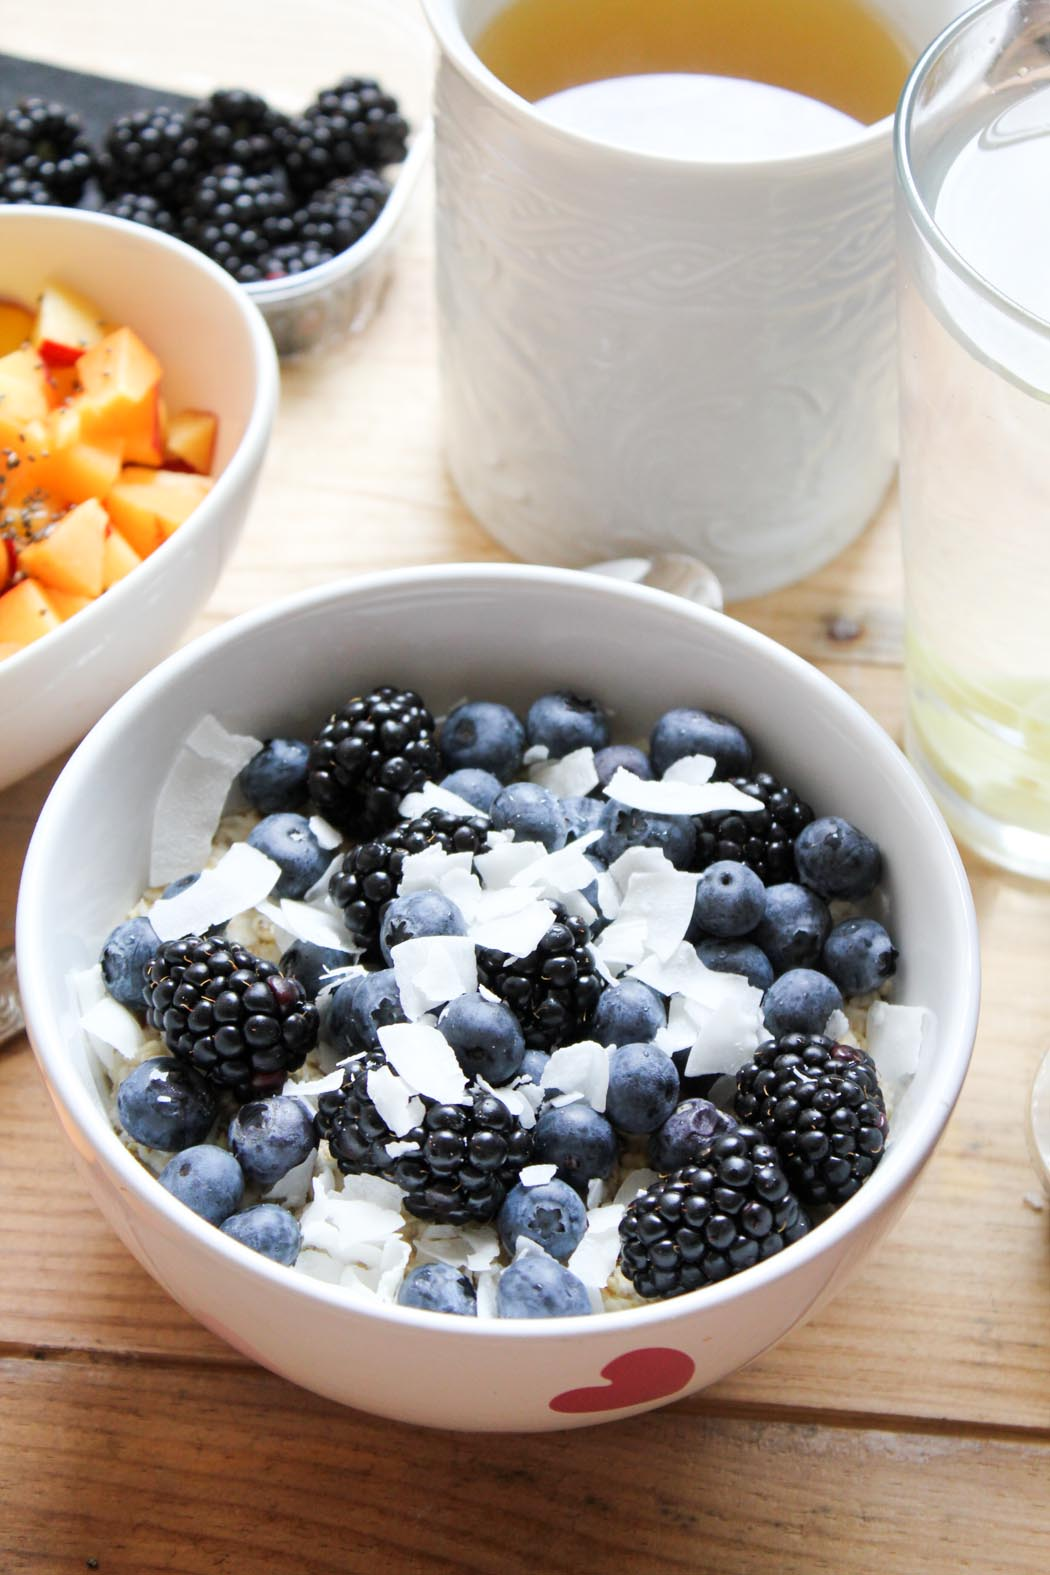 Lindarella-Foodblogger-Cleaneating-Oatmeal-Blueberry-Breakfastdream-2